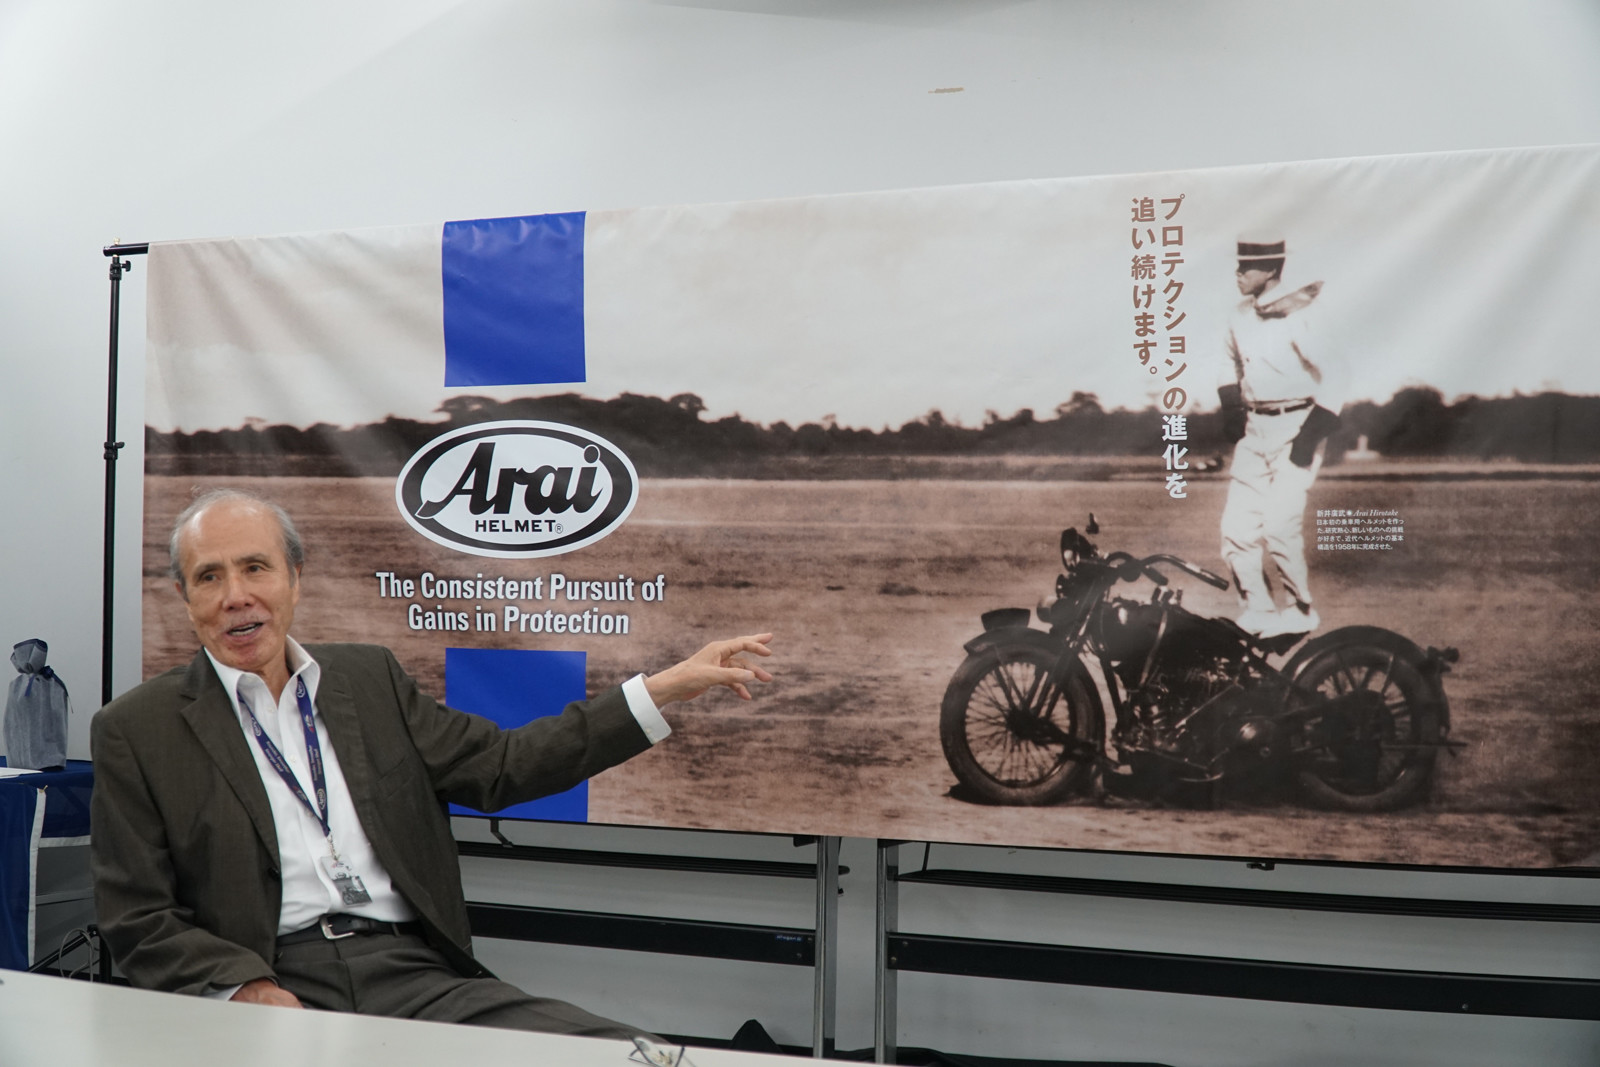 Mr. Arai is seated in front of an iconic poster featuring his father Hirotake Arai, who started the company. Aki Arai, Mr. Arai's son, also works at the company and is line to take it over when Mr. Arai retires.